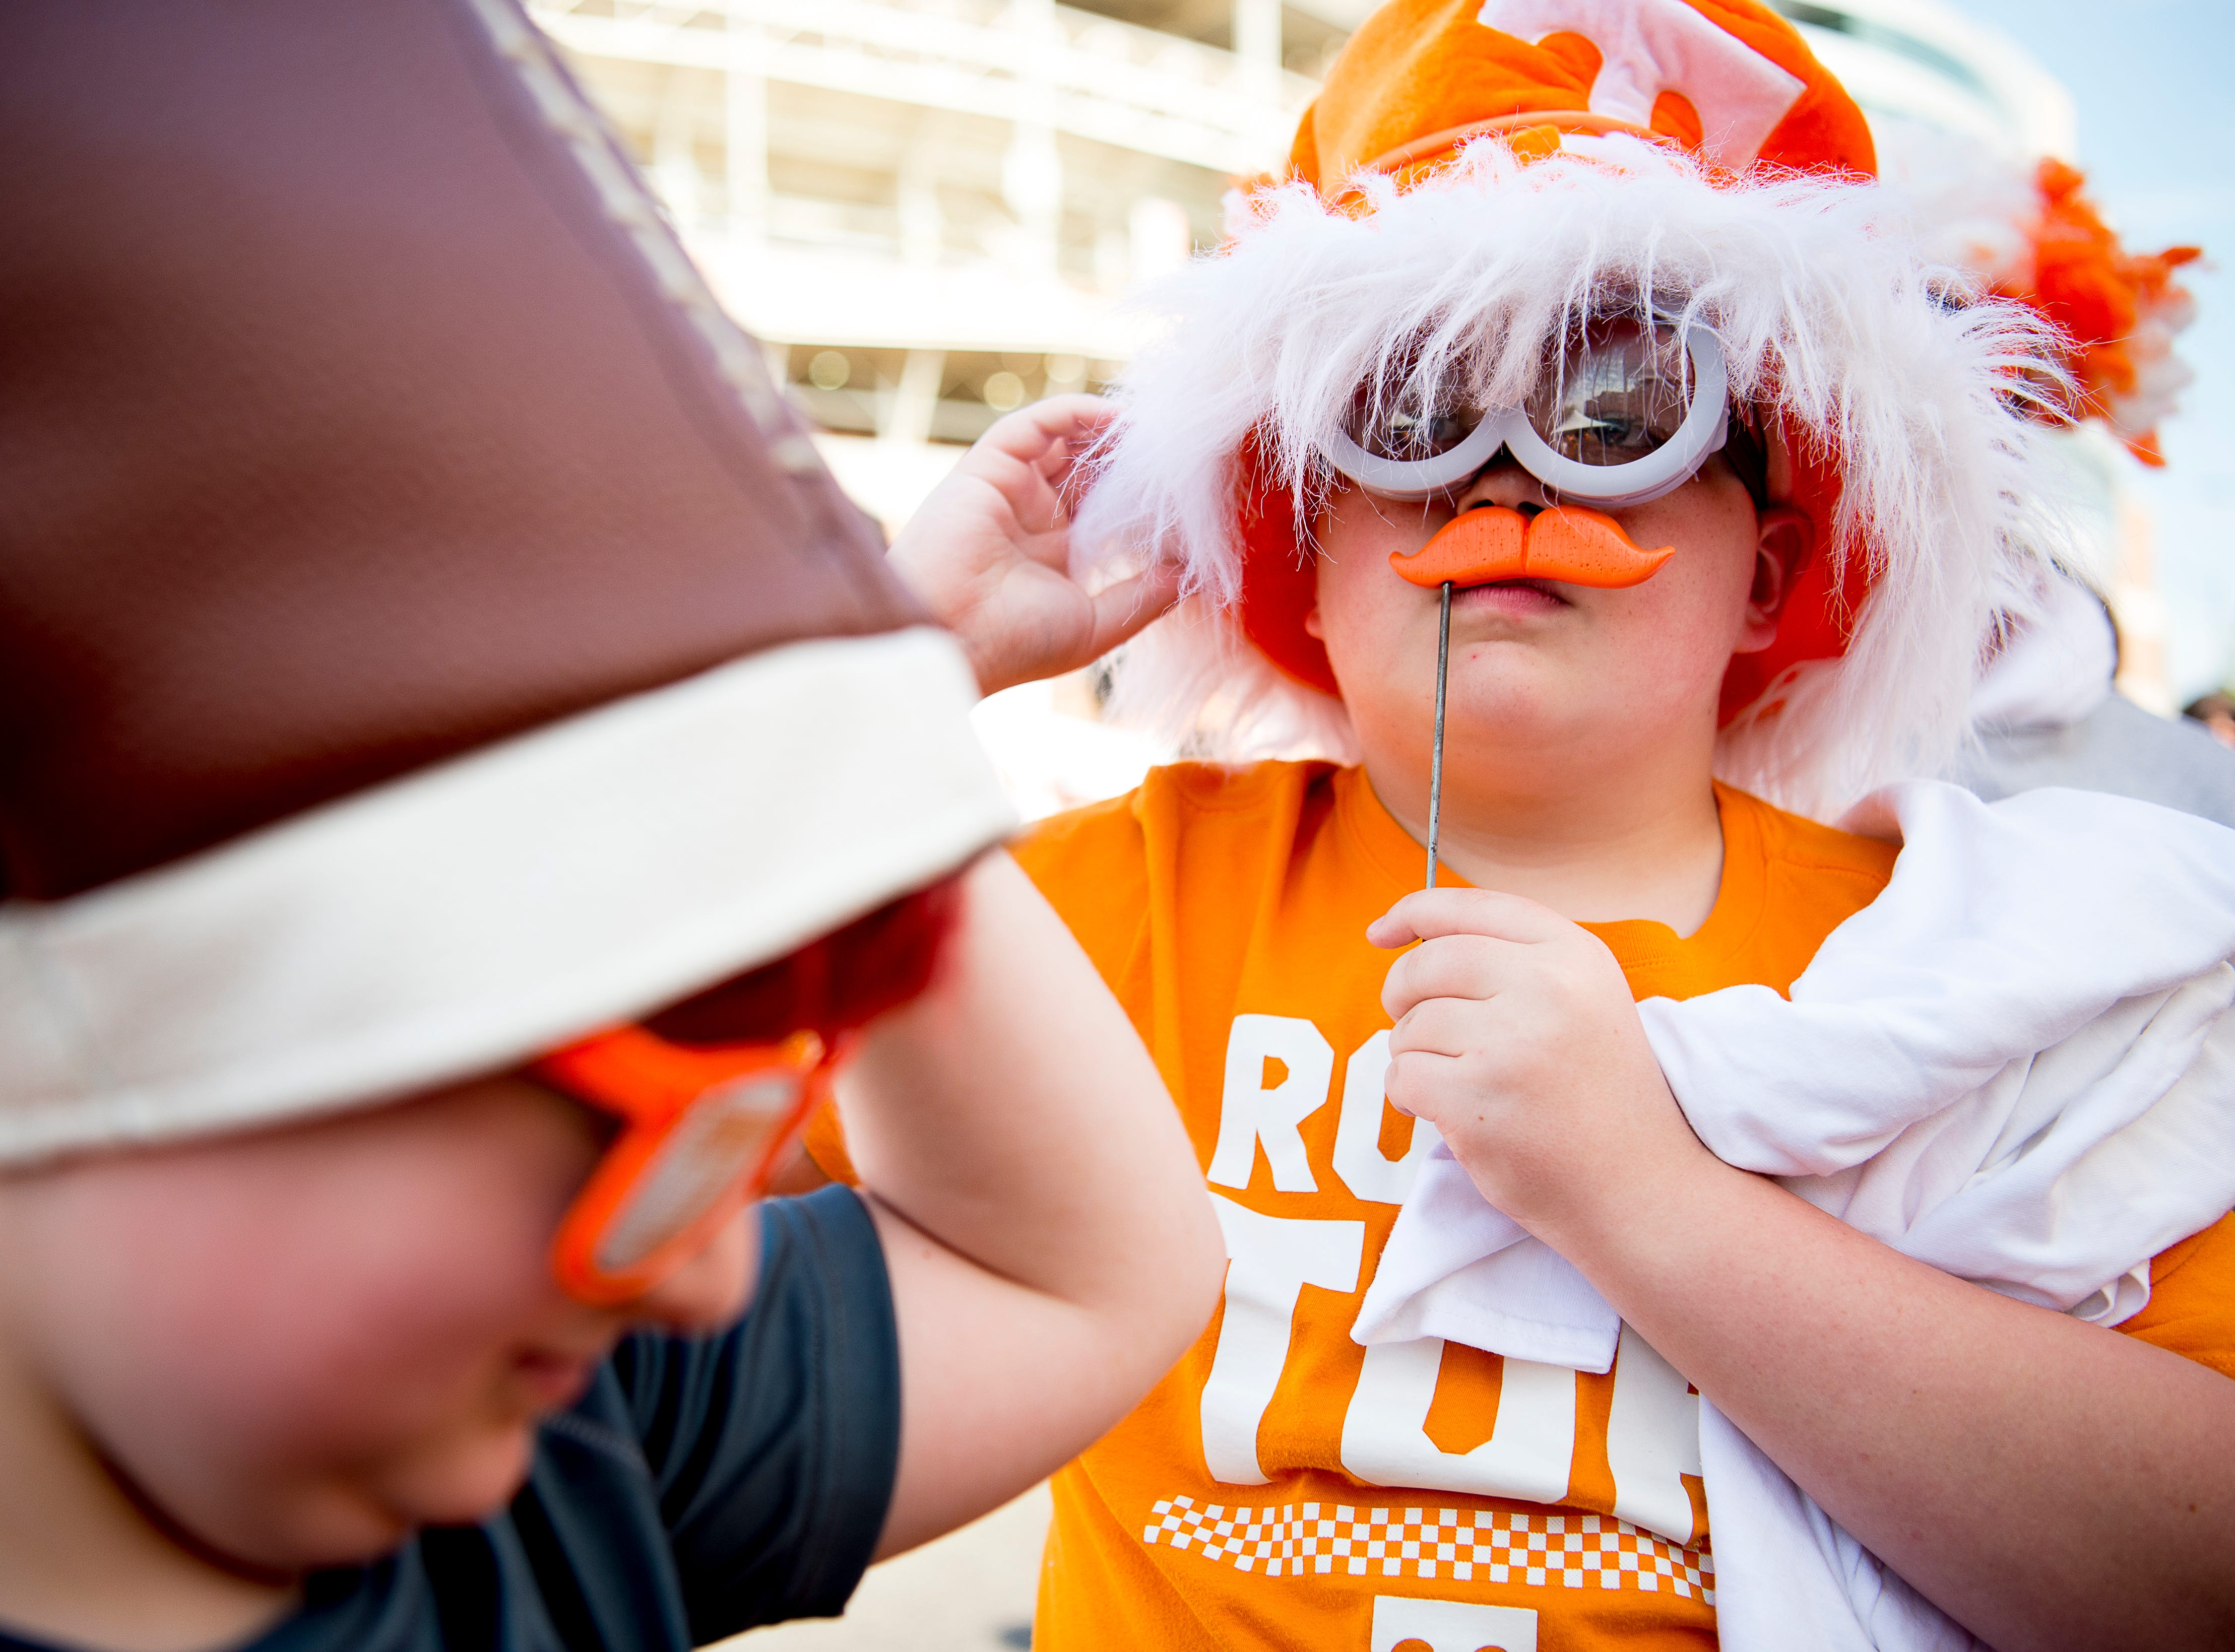 Brady Partin, right, and Ryan Jeffers, both from Jellico, put on their Tennessee gear at the Tennessee Spring Game at Neyland Stadium in Knoxville, Tennessee on Saturday, April 13, 2019.